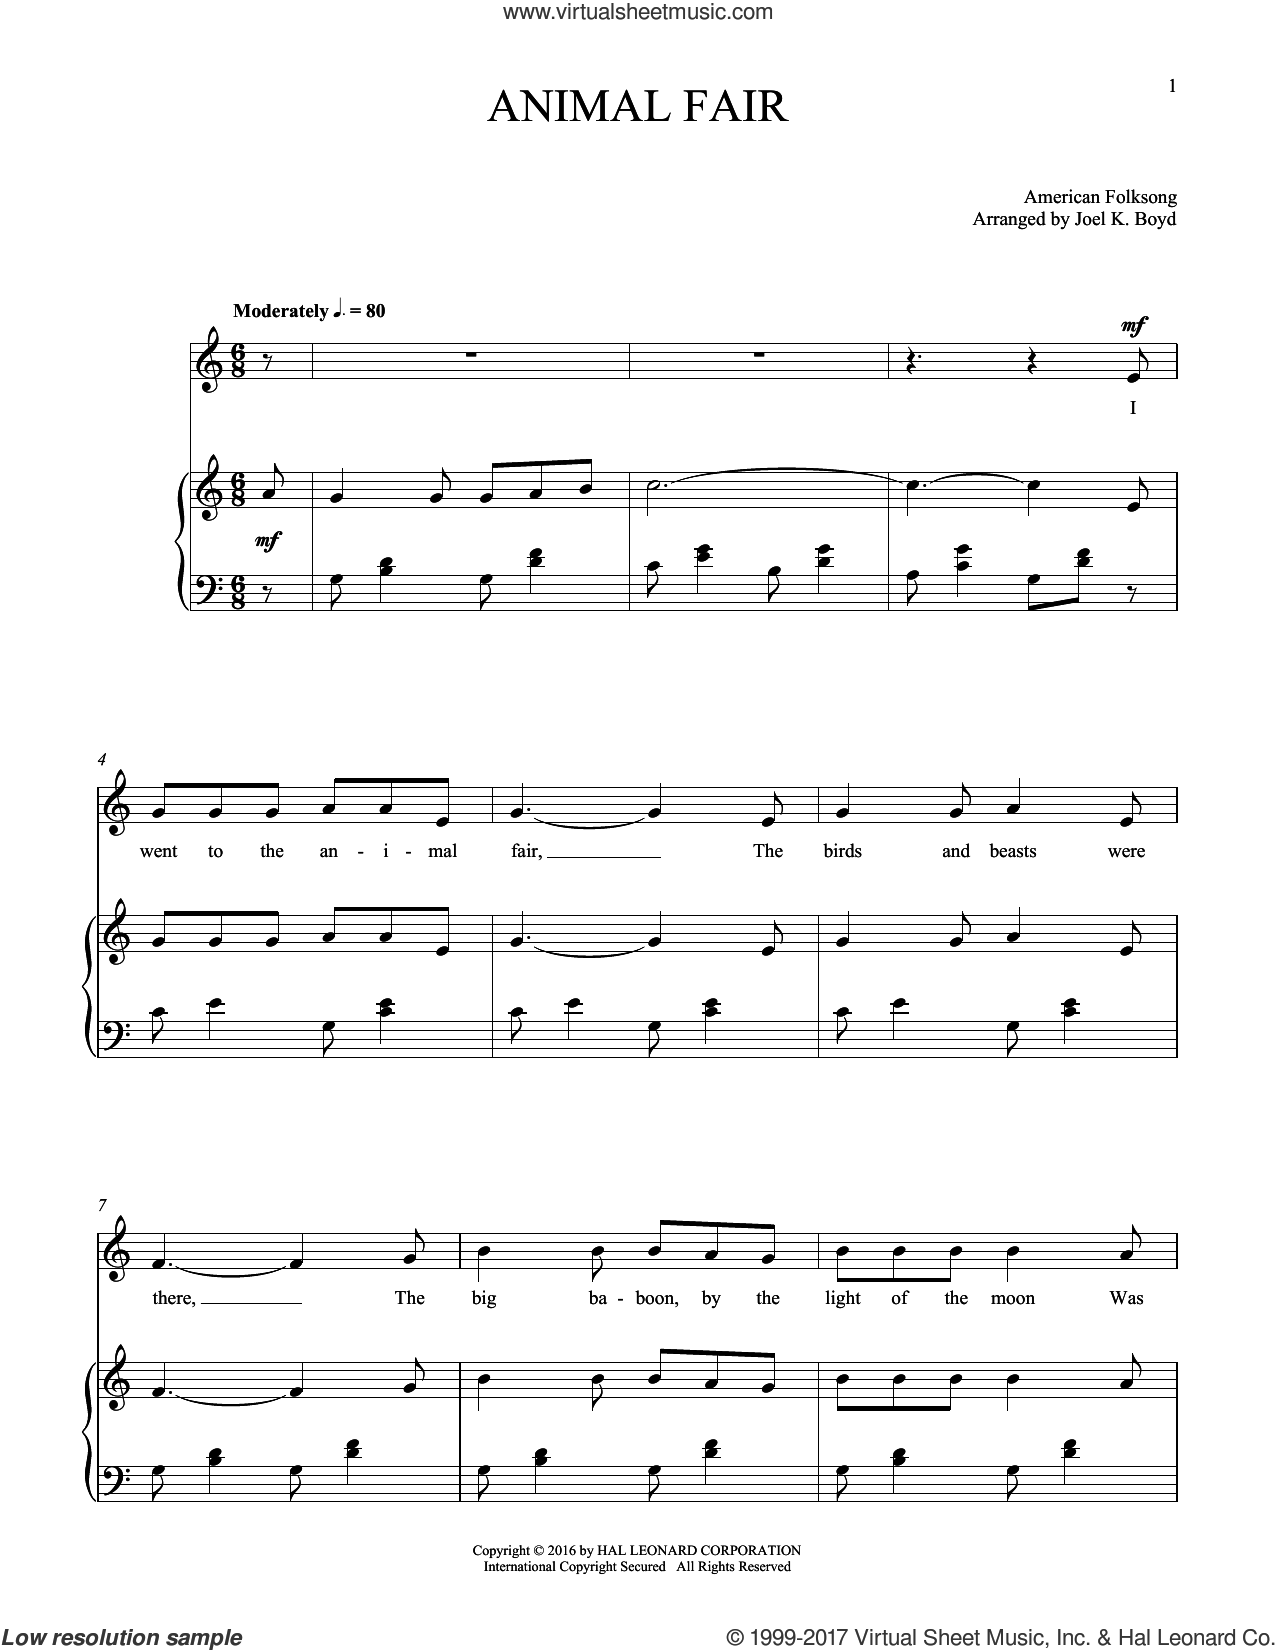 Animal Fair sheet music for voice and piano by American Folksong, intermediate skill level